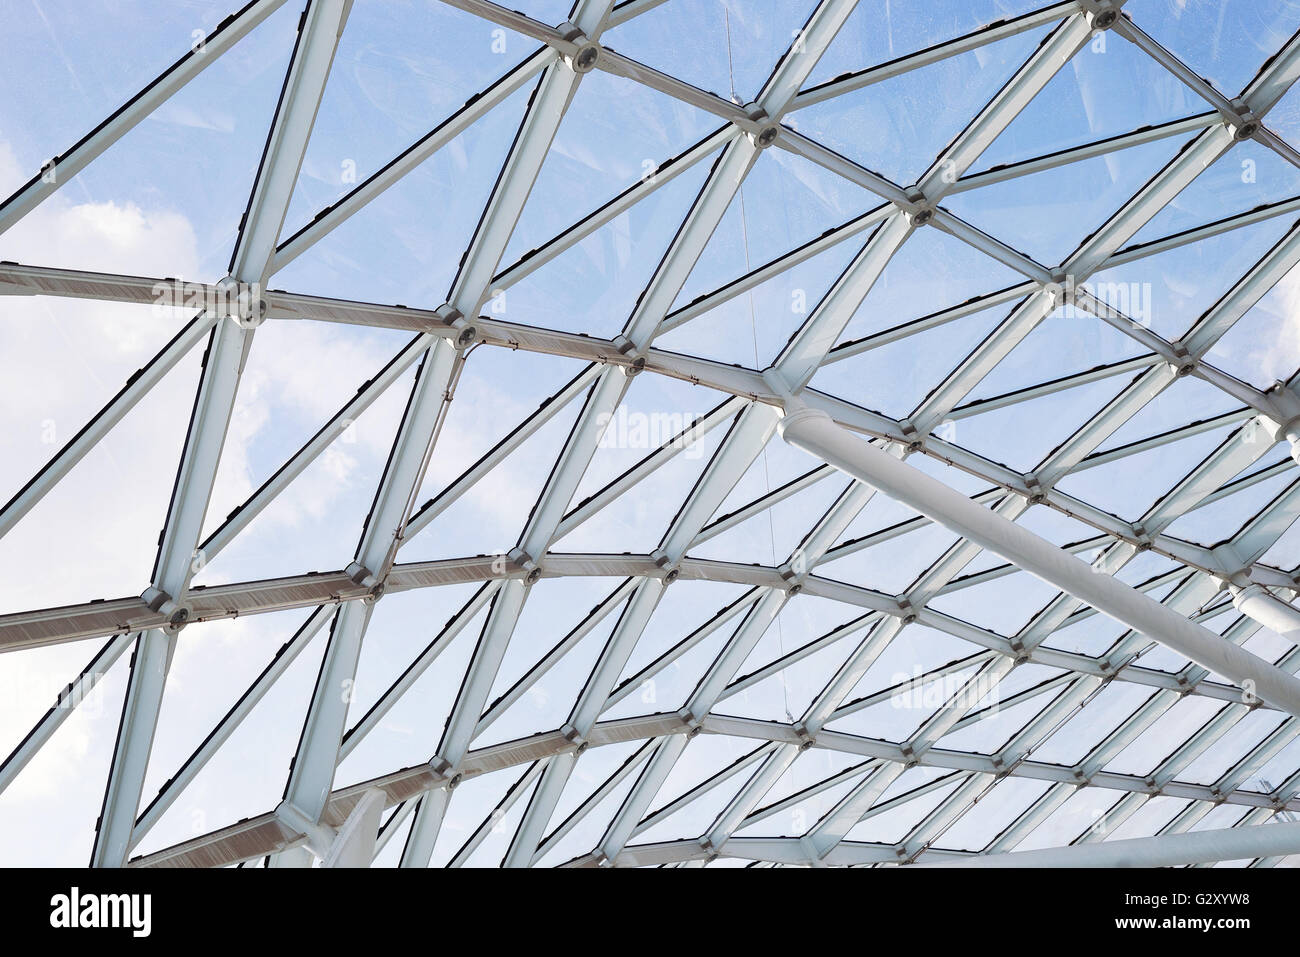 Steel Glass Roof Ceiling Wall Construction Transparent Window With